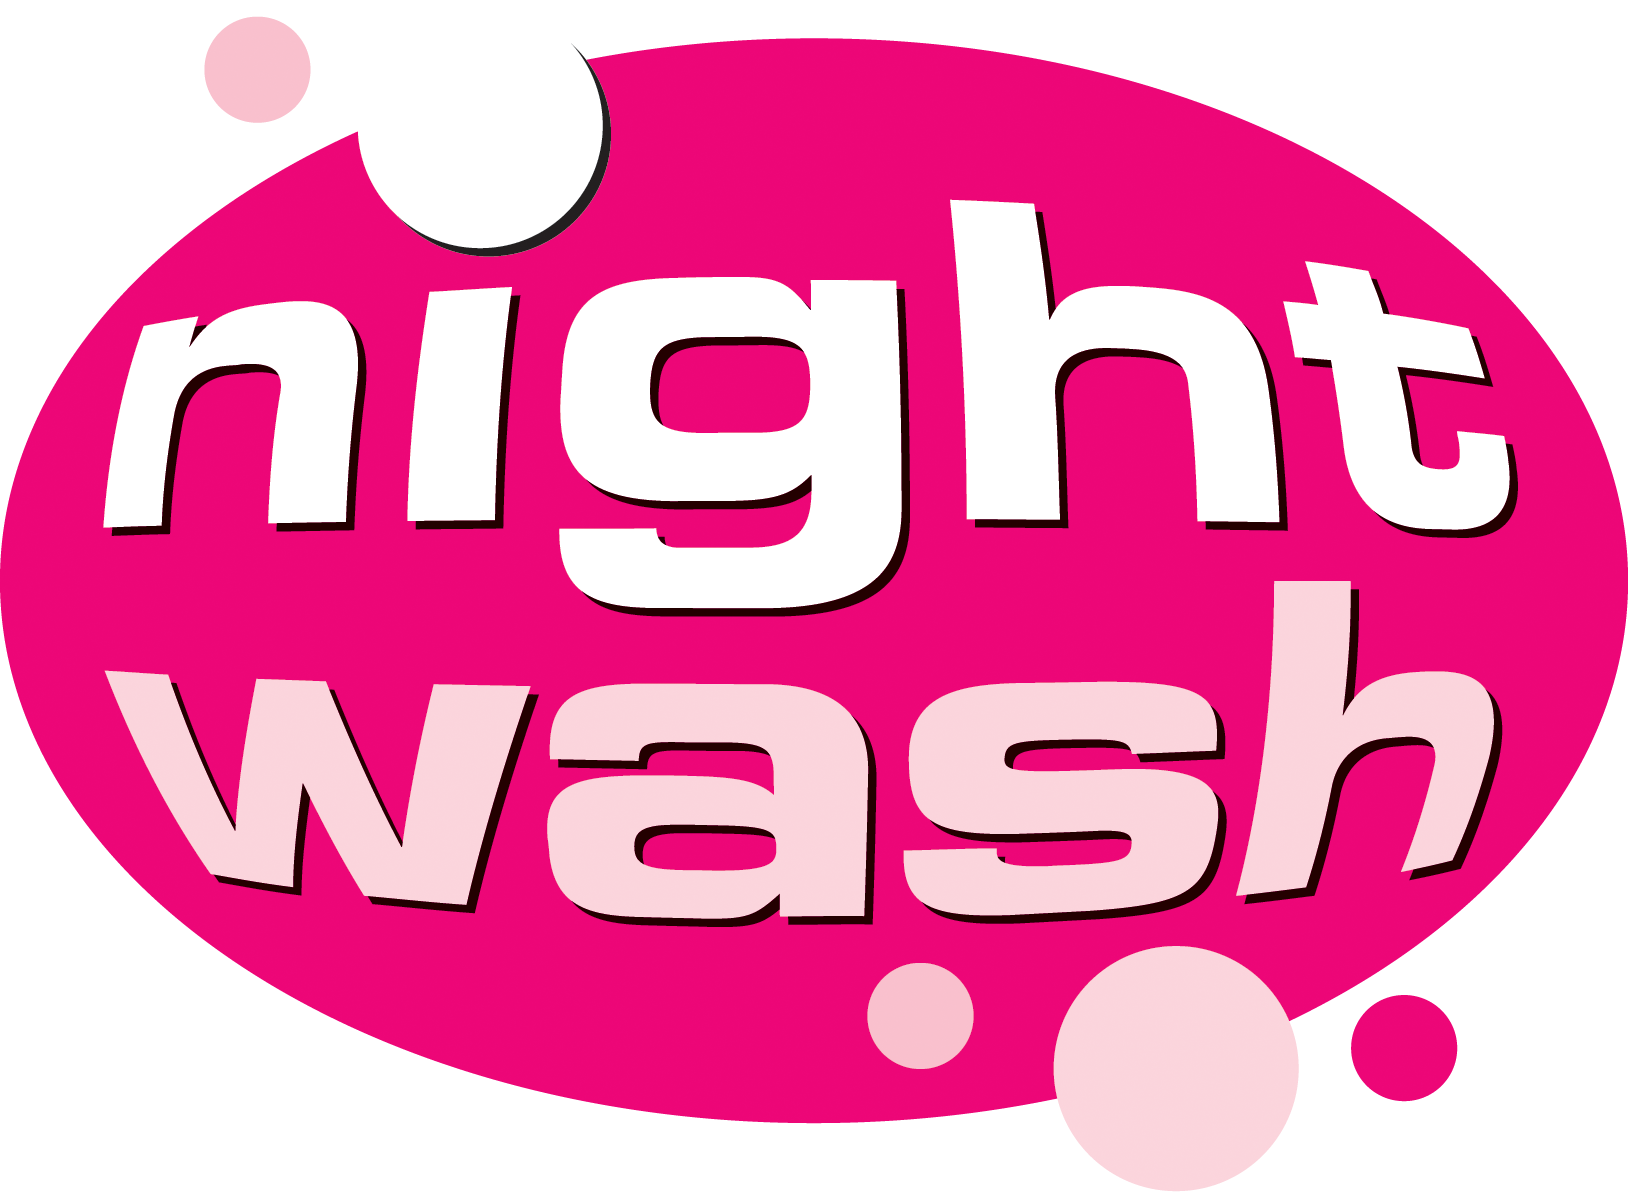 NightWash Club